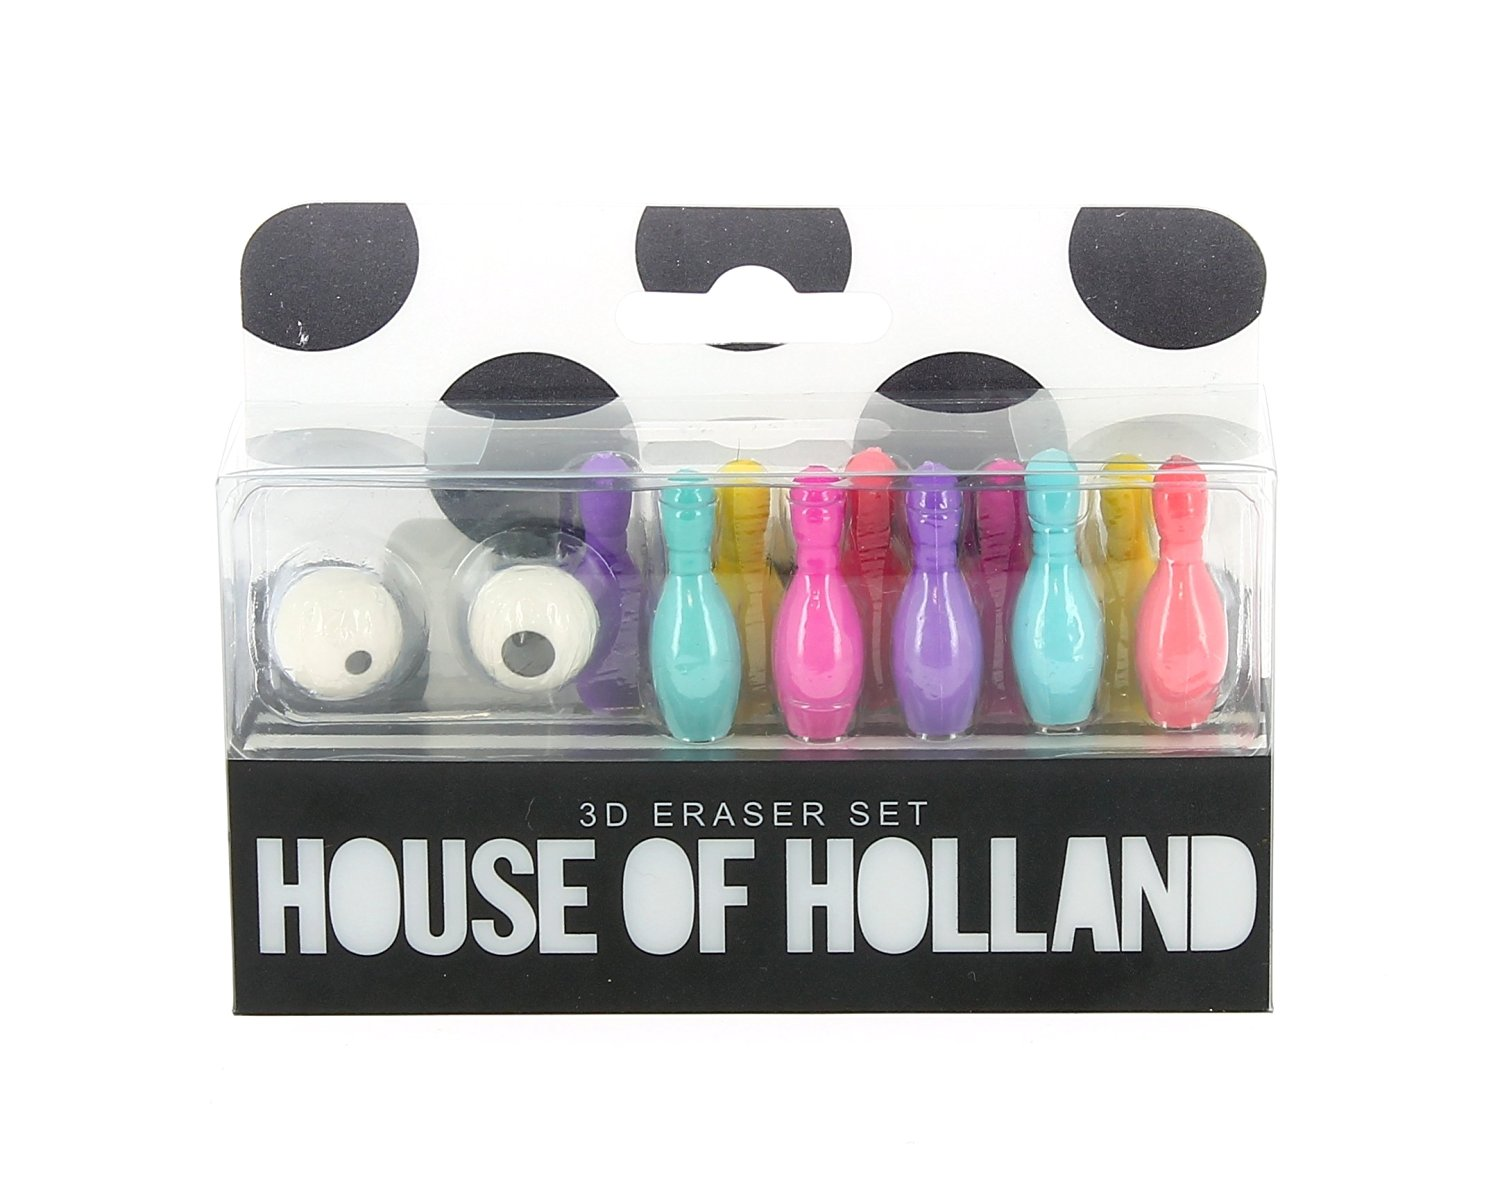 House of Holland ten pin and ball bowling eraser set